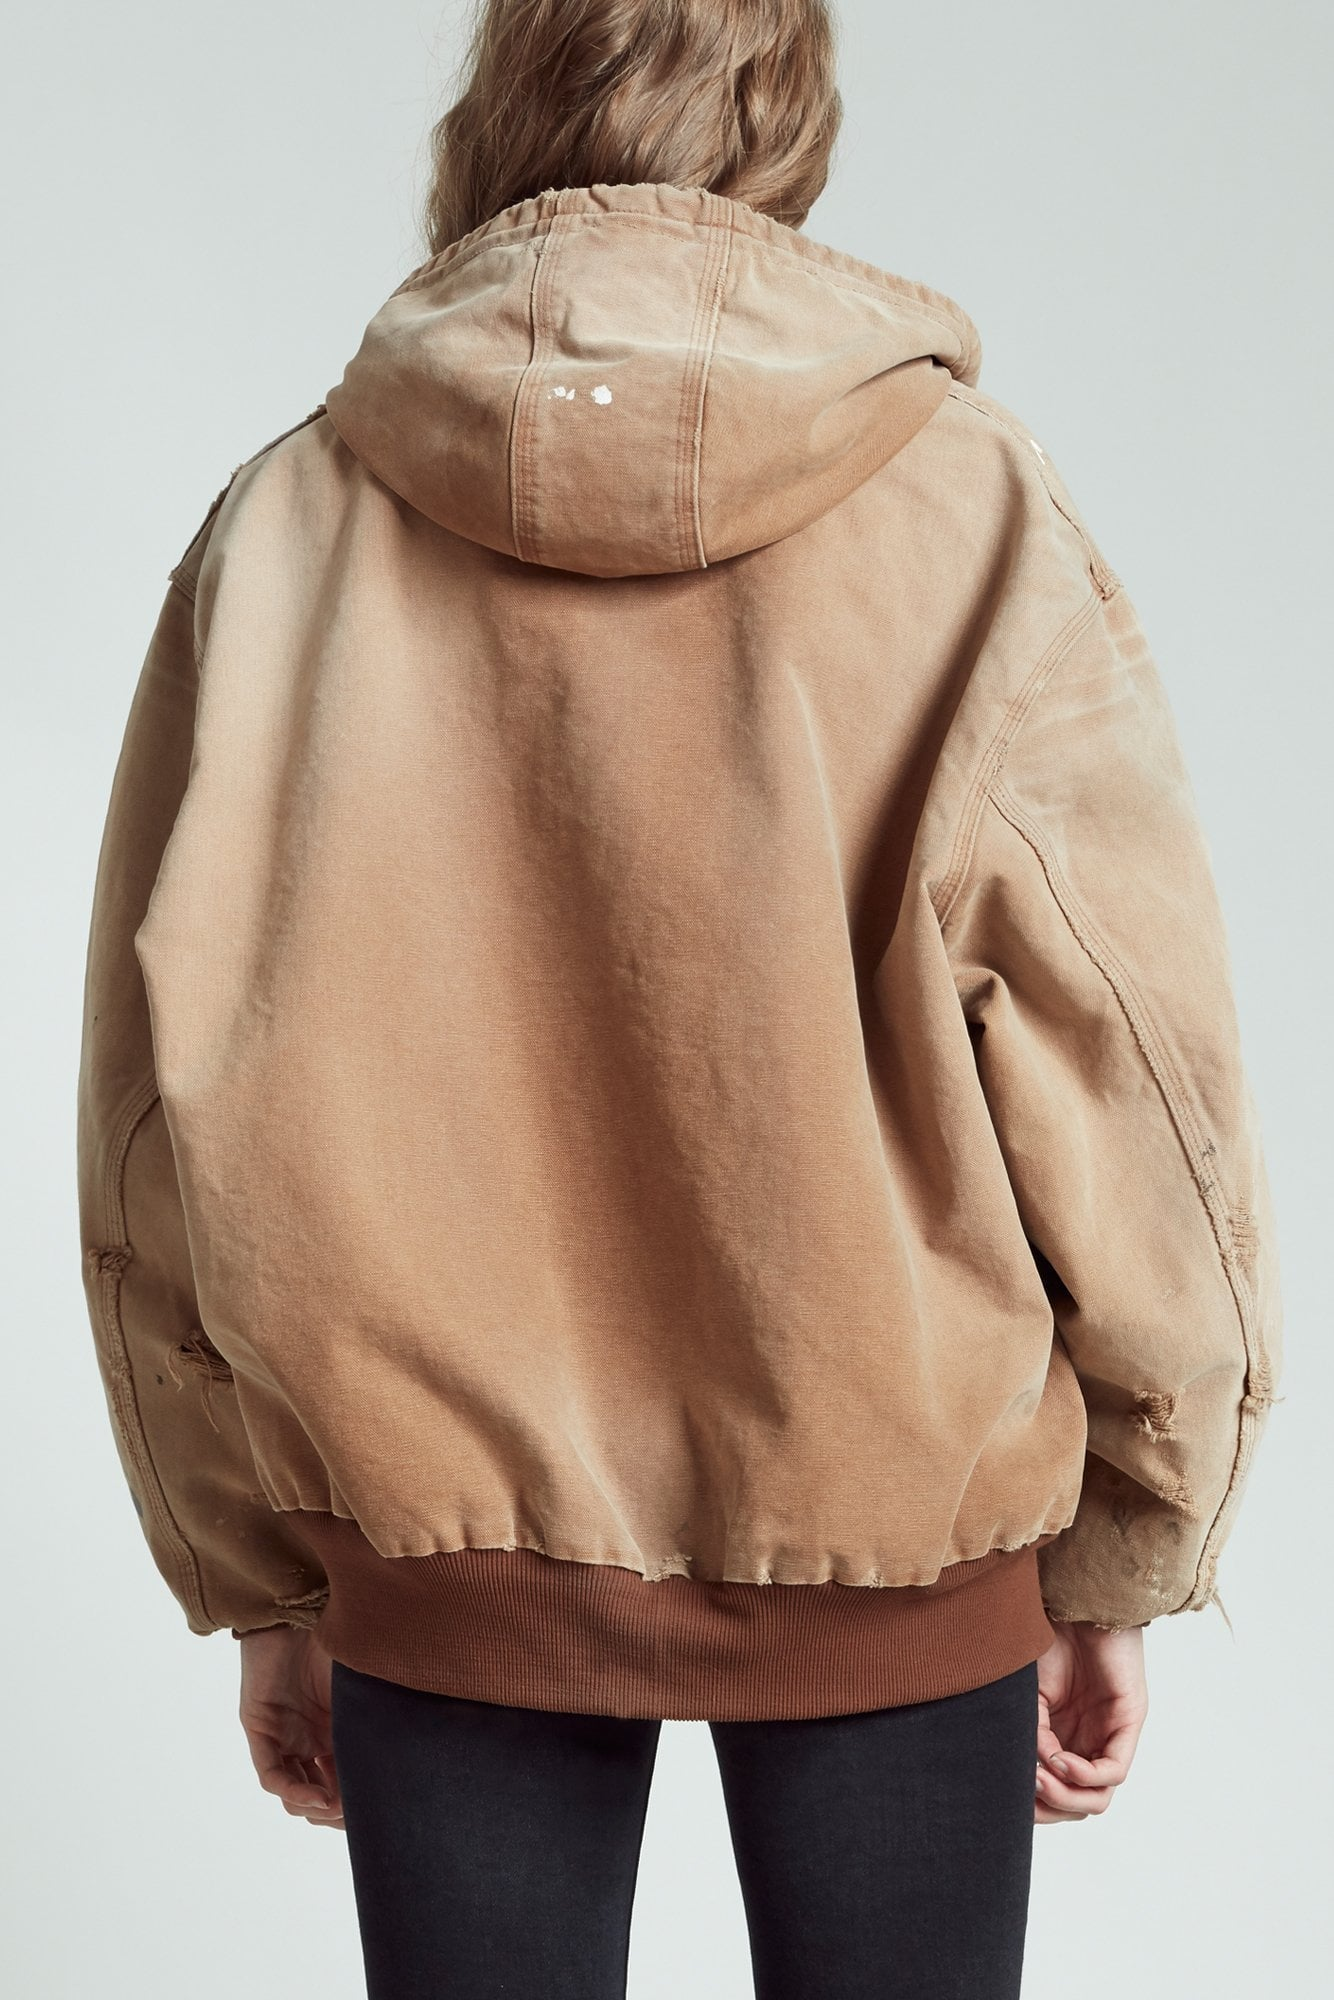 Vintage Duck Thermal Lined Jacket - Brown